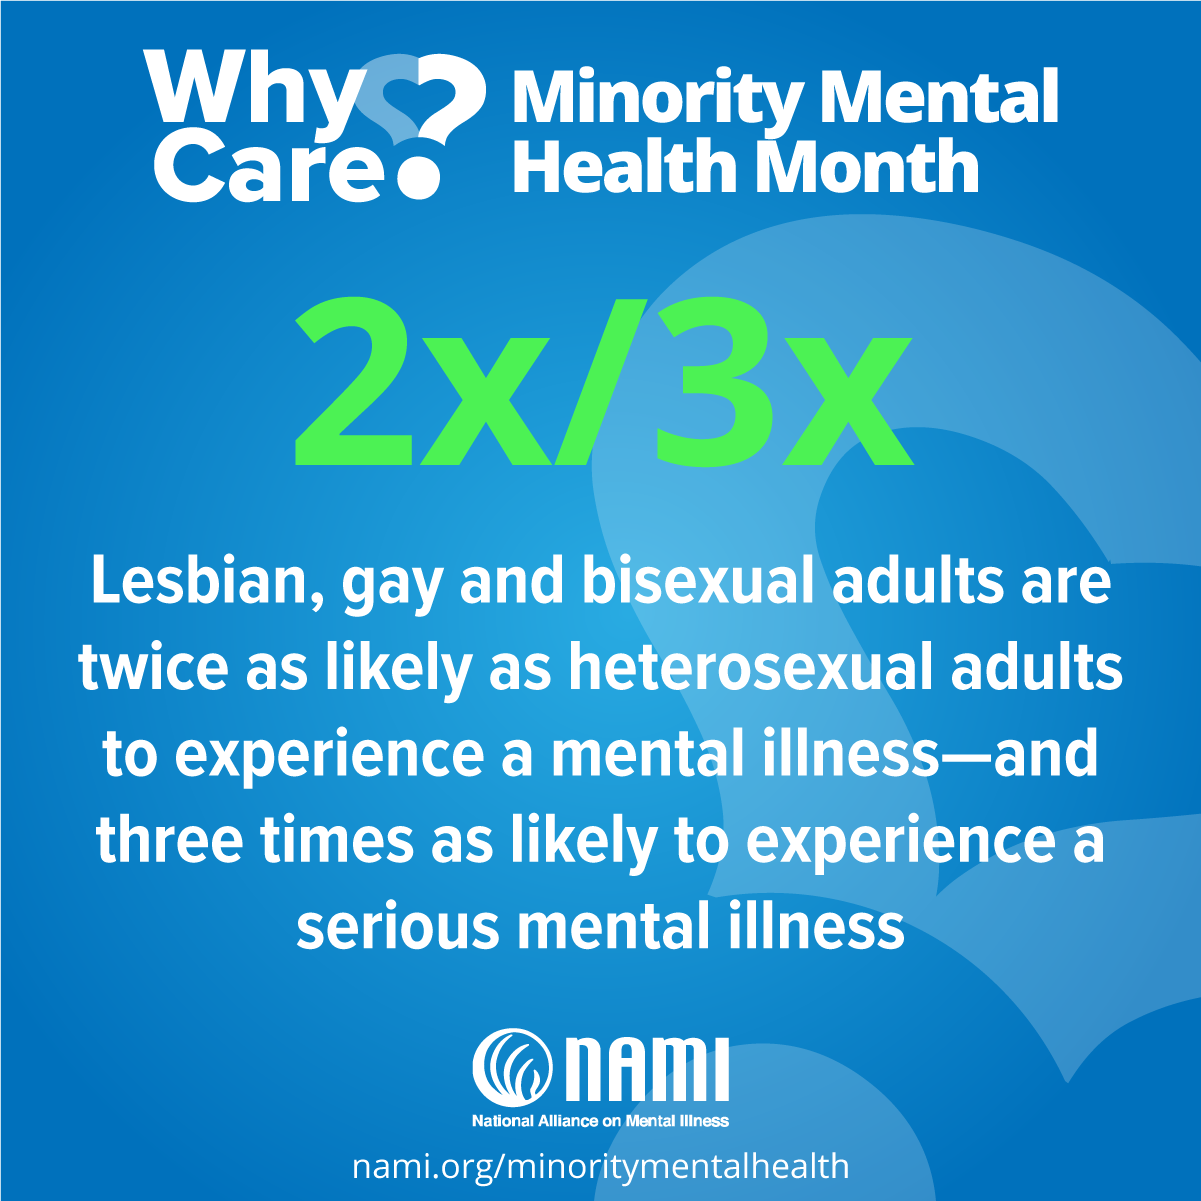 whycare-mmham-Instagram-stat-2x3xlgbtq.png